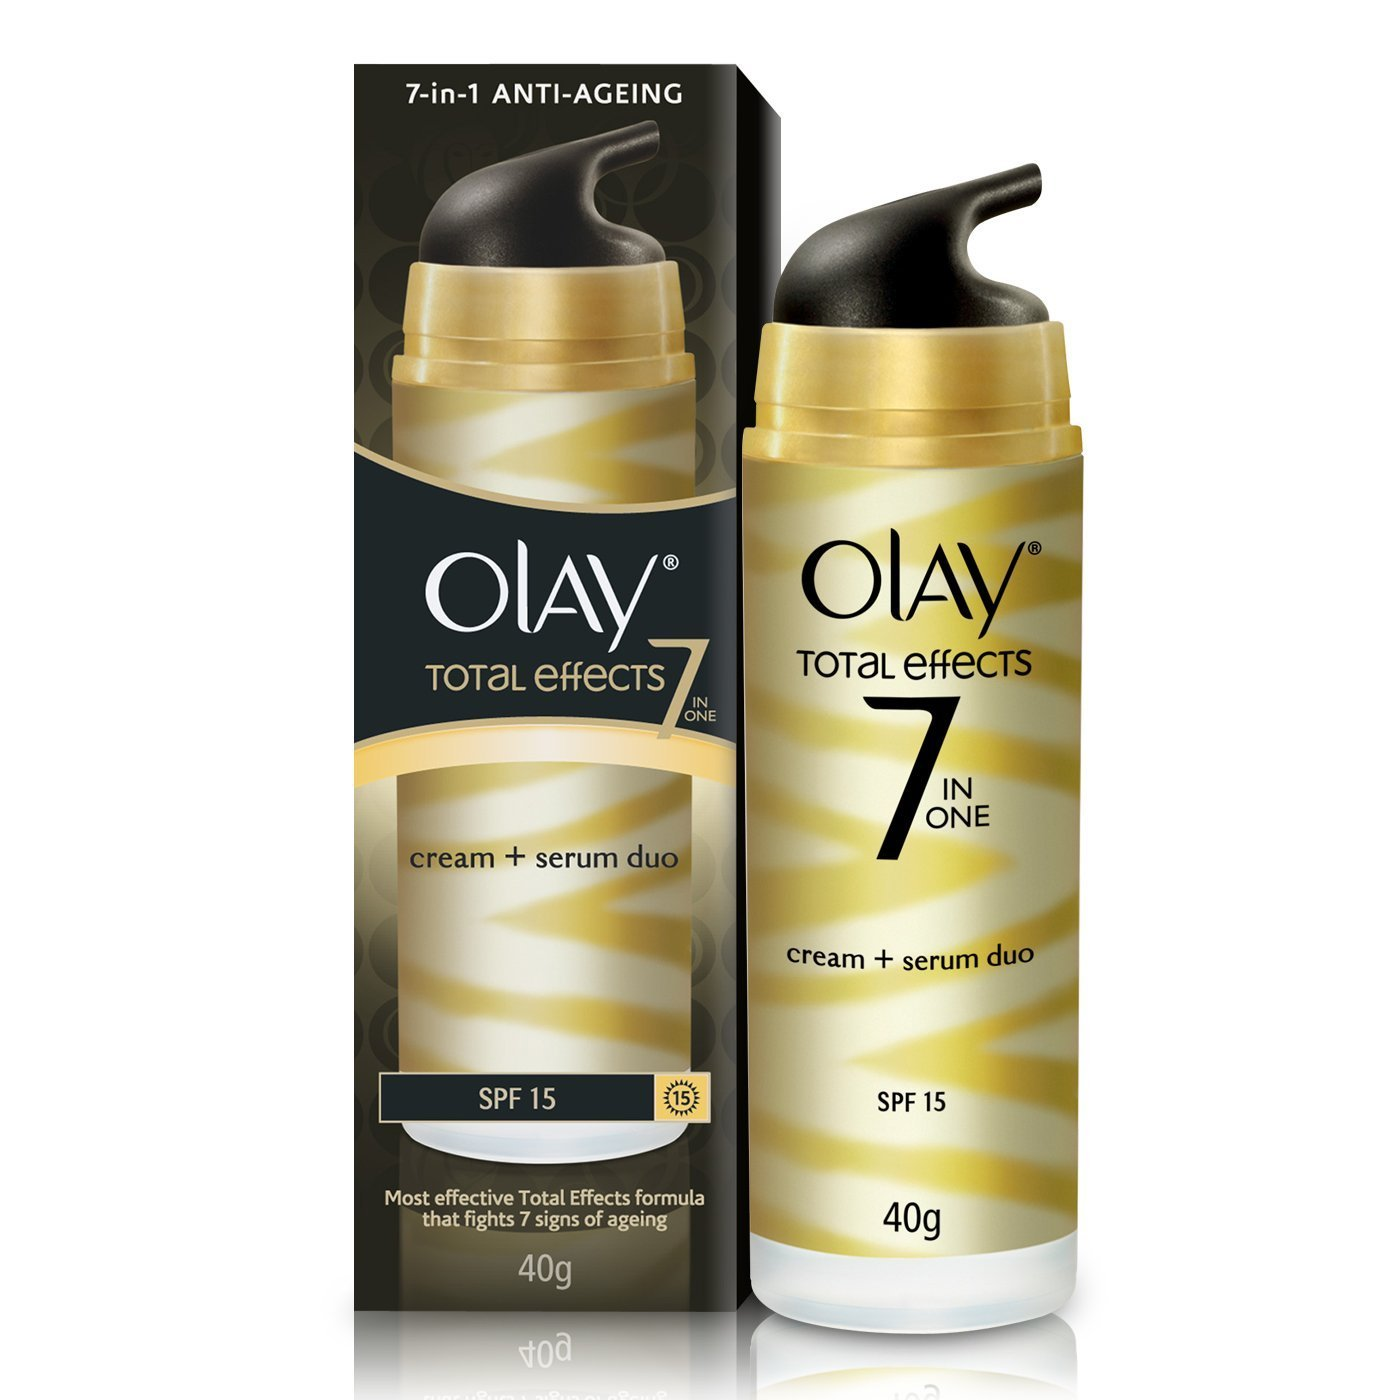 Olay Total Effects 7 In 1 Anti Ageing Cream Serum Duo